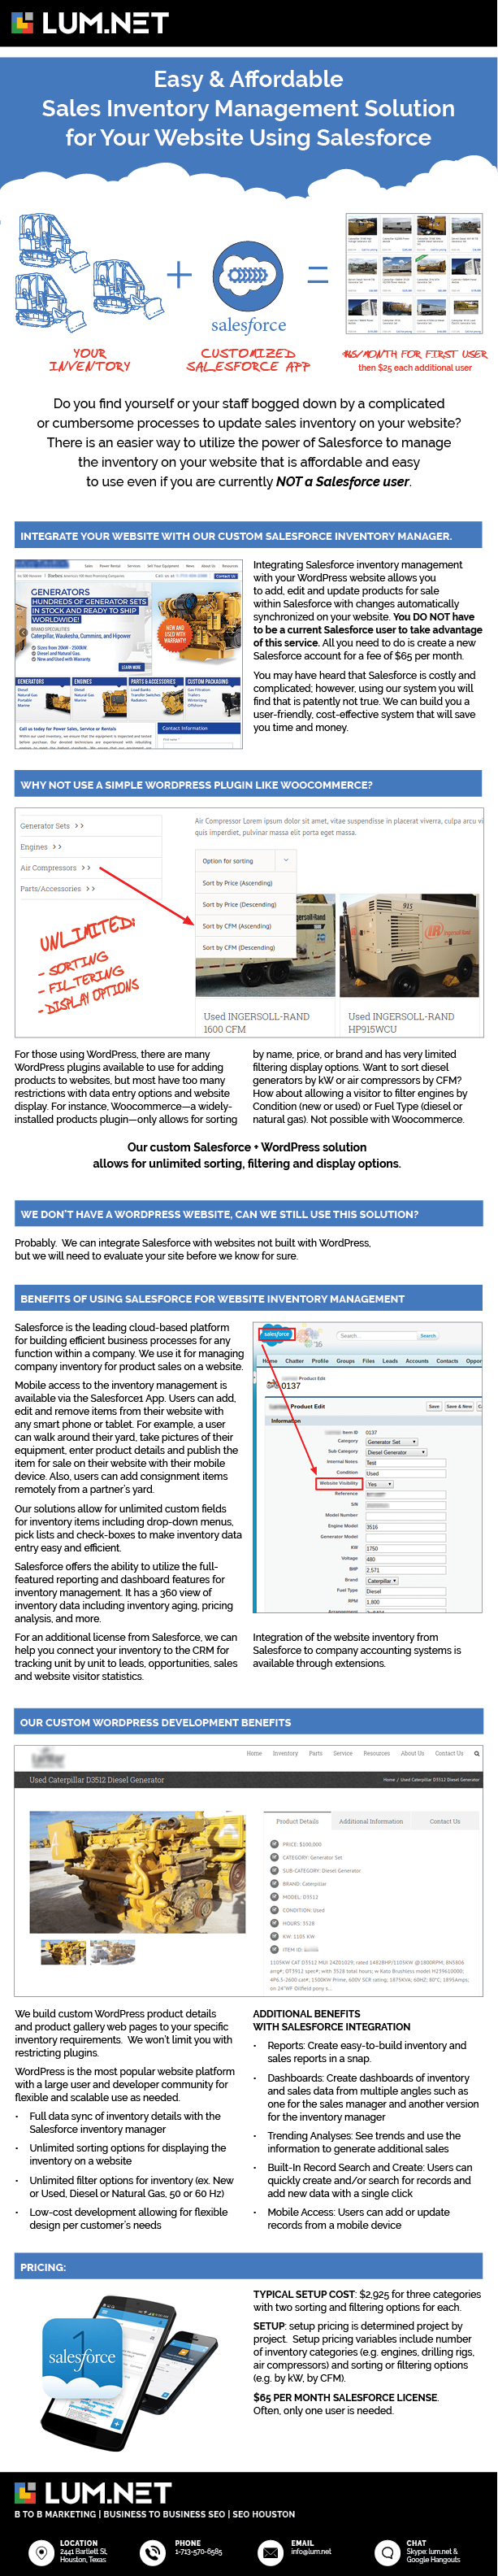 SalesforceAppInforgraphic